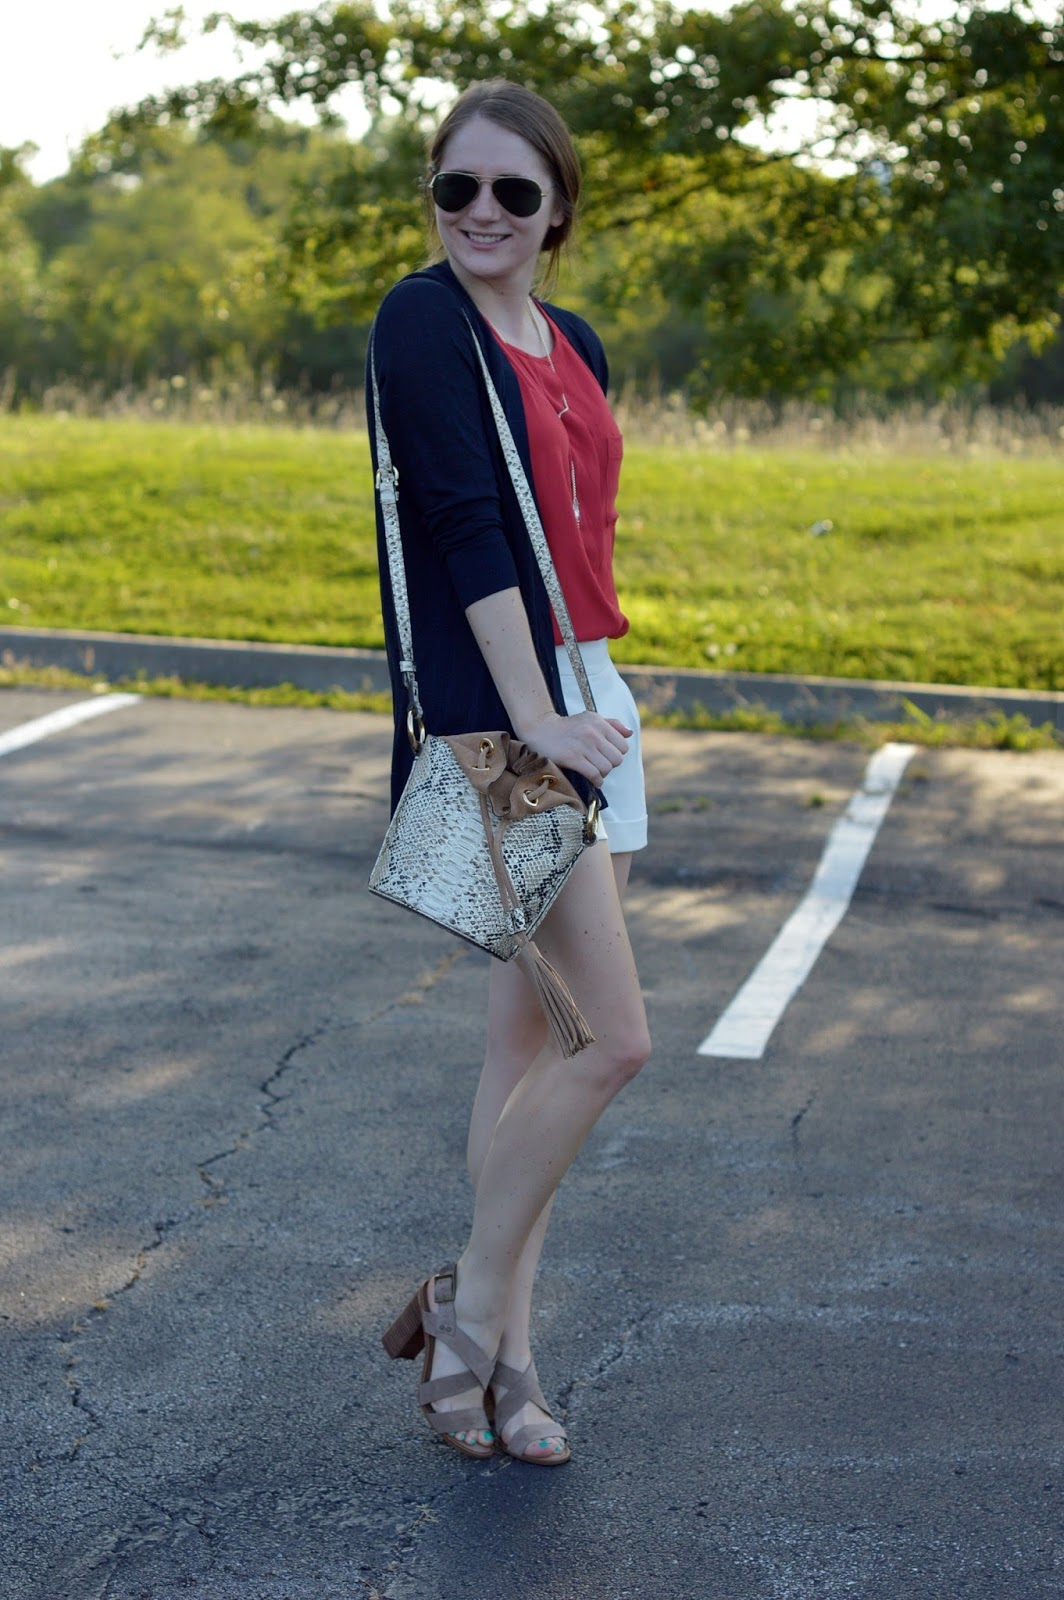 patriotic outfits to wear for labor day | shorts with heeled sandals | how to wear shorts with heels | tassel bucket bag | red white and blue looks |